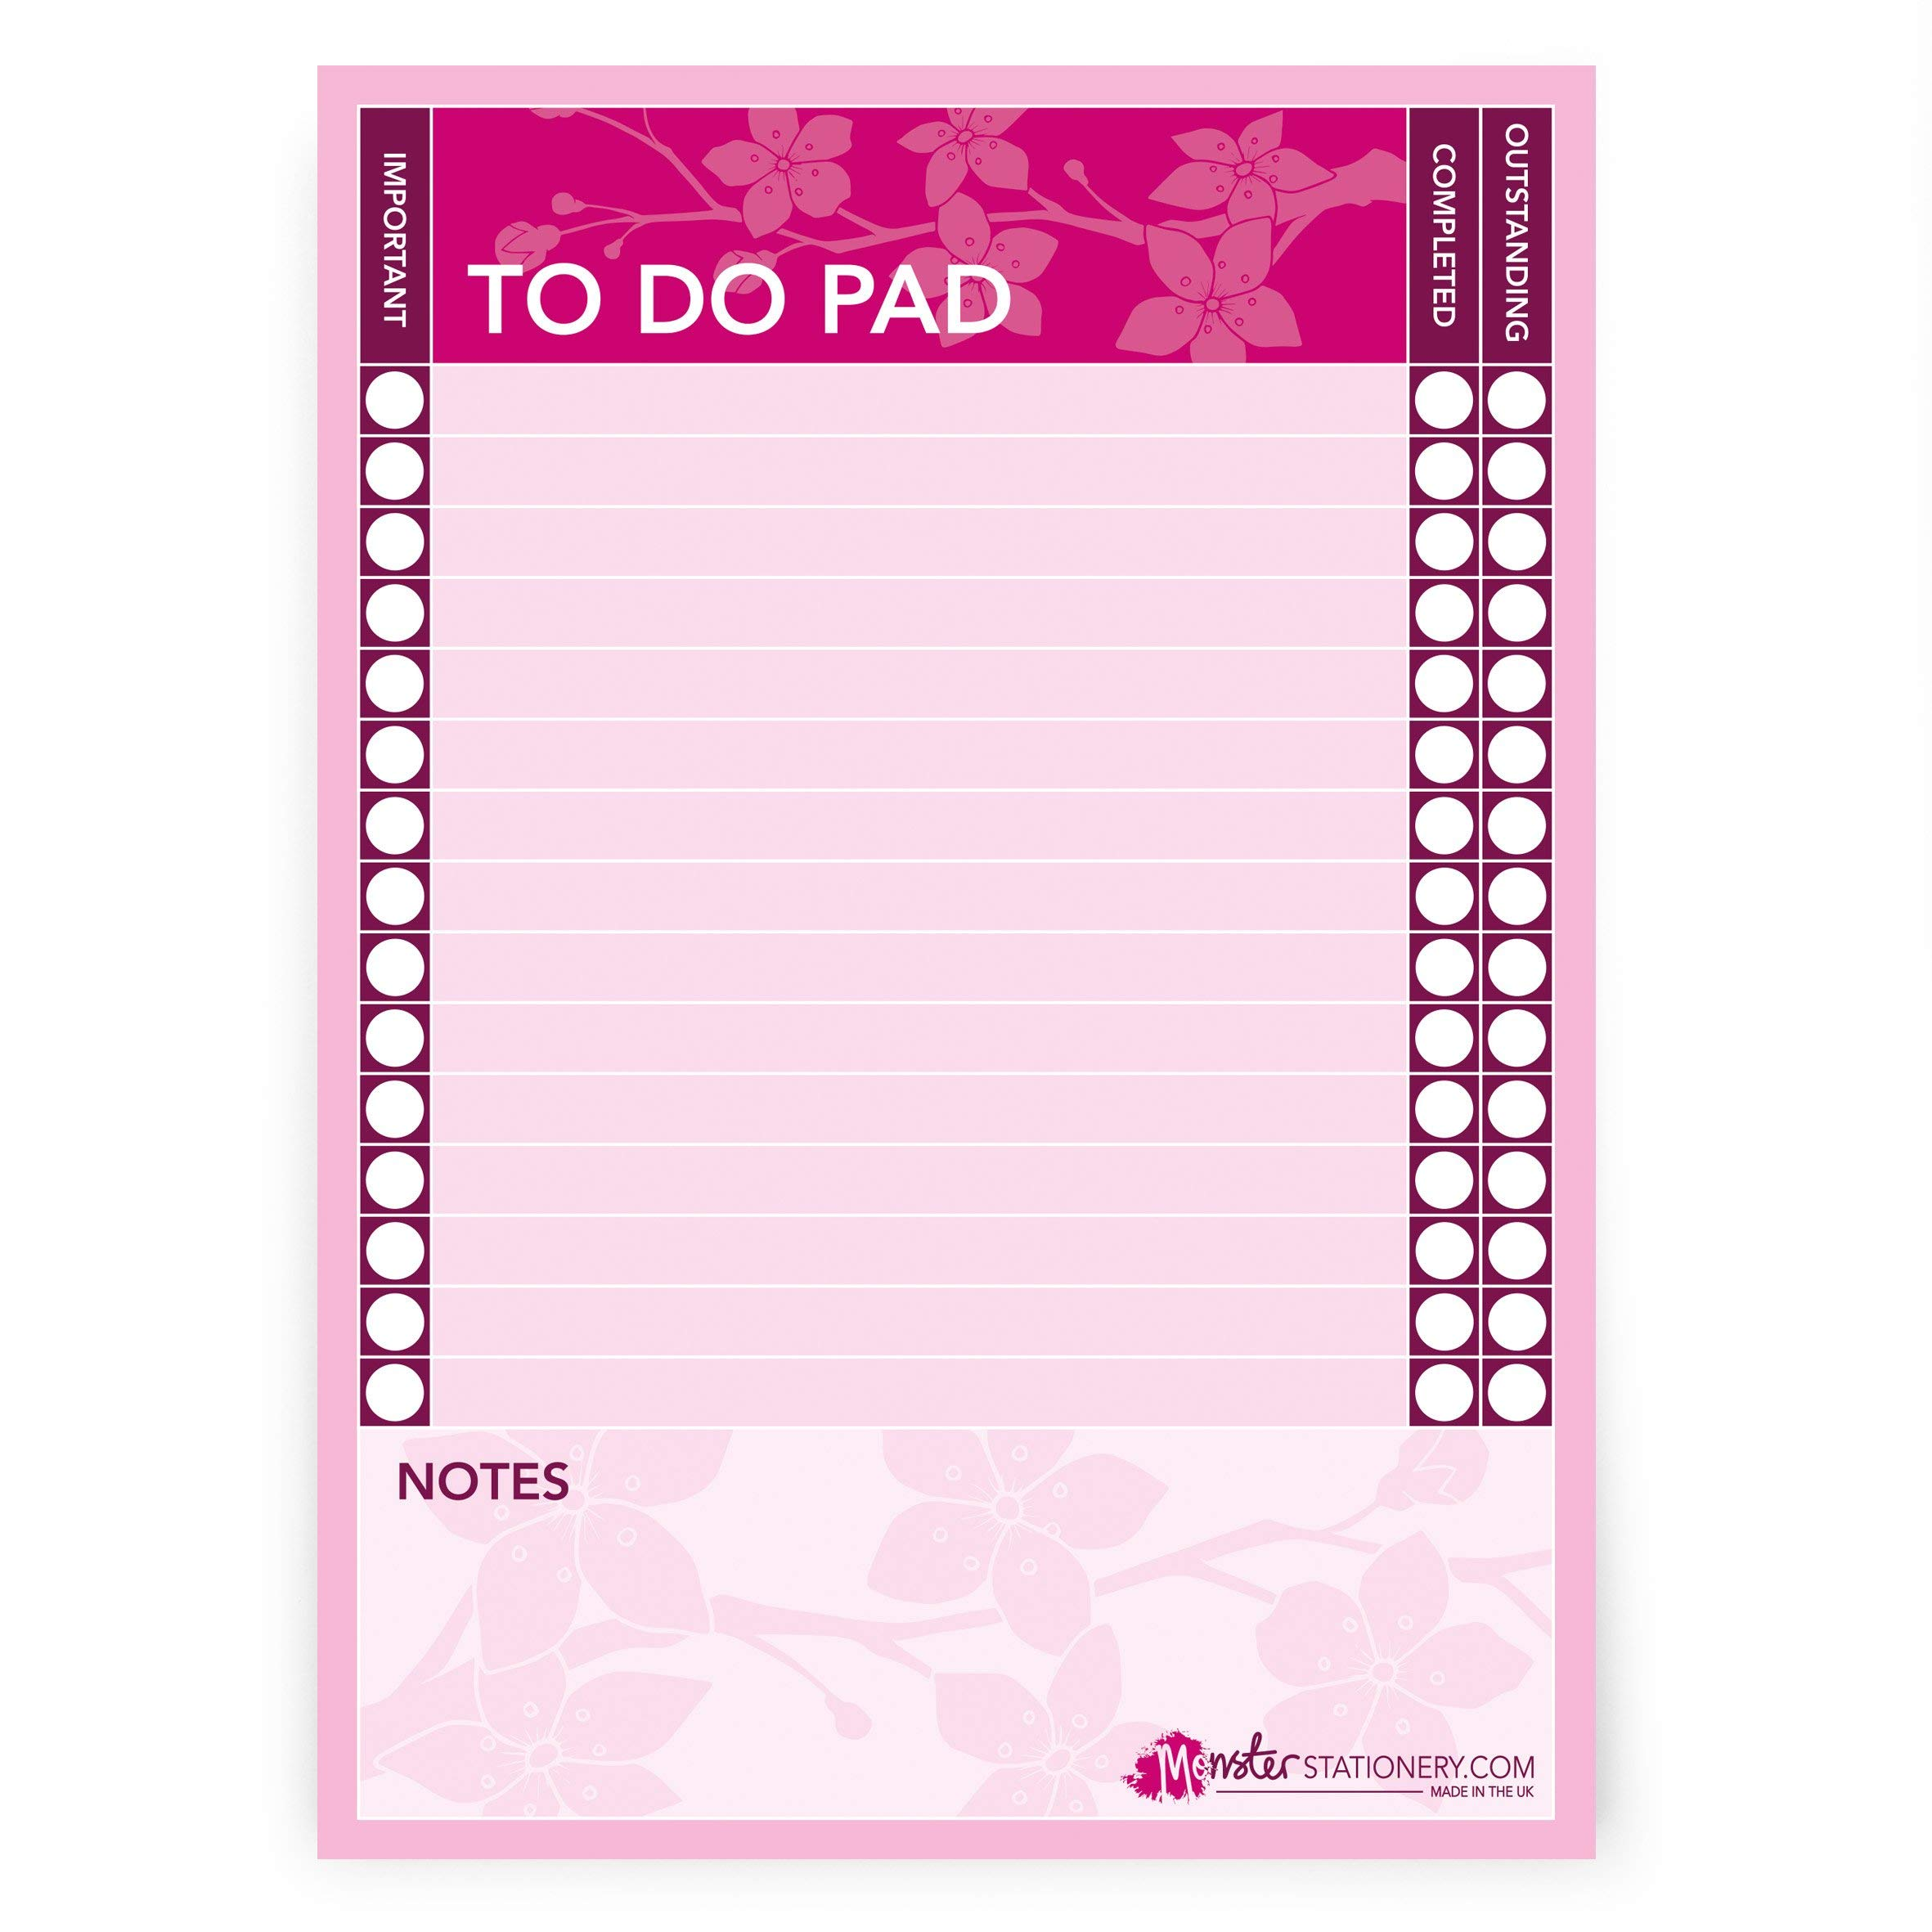 Monster-Stationery-Cherry-Blossom-A5-to-Do-PadDaily-Schedule-PlannerDesk-Pad-60-Sheets-80gsm-Made-in-UK